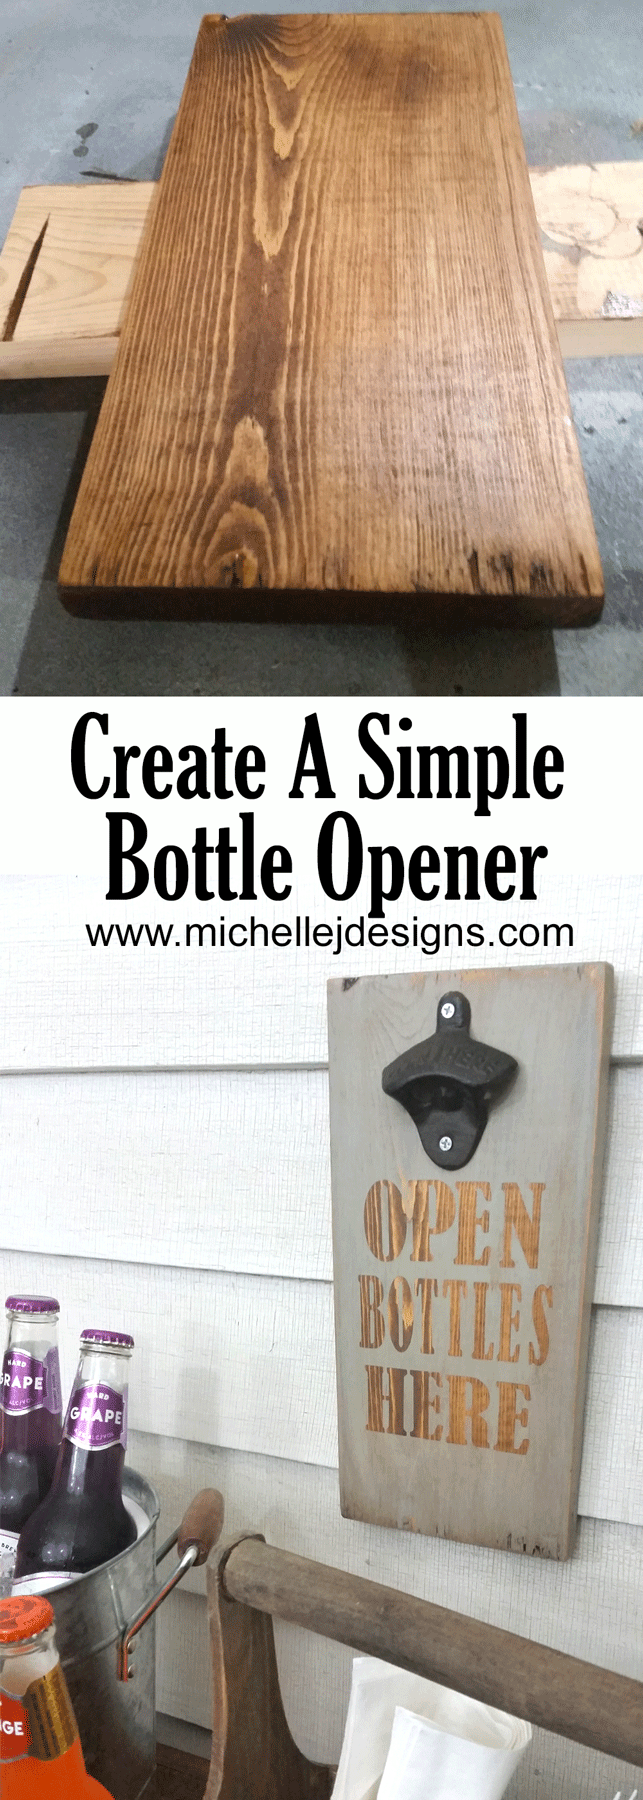 This bottle opener tutorial is really easy and will only take a day to complete! www.michellejdesigns.com